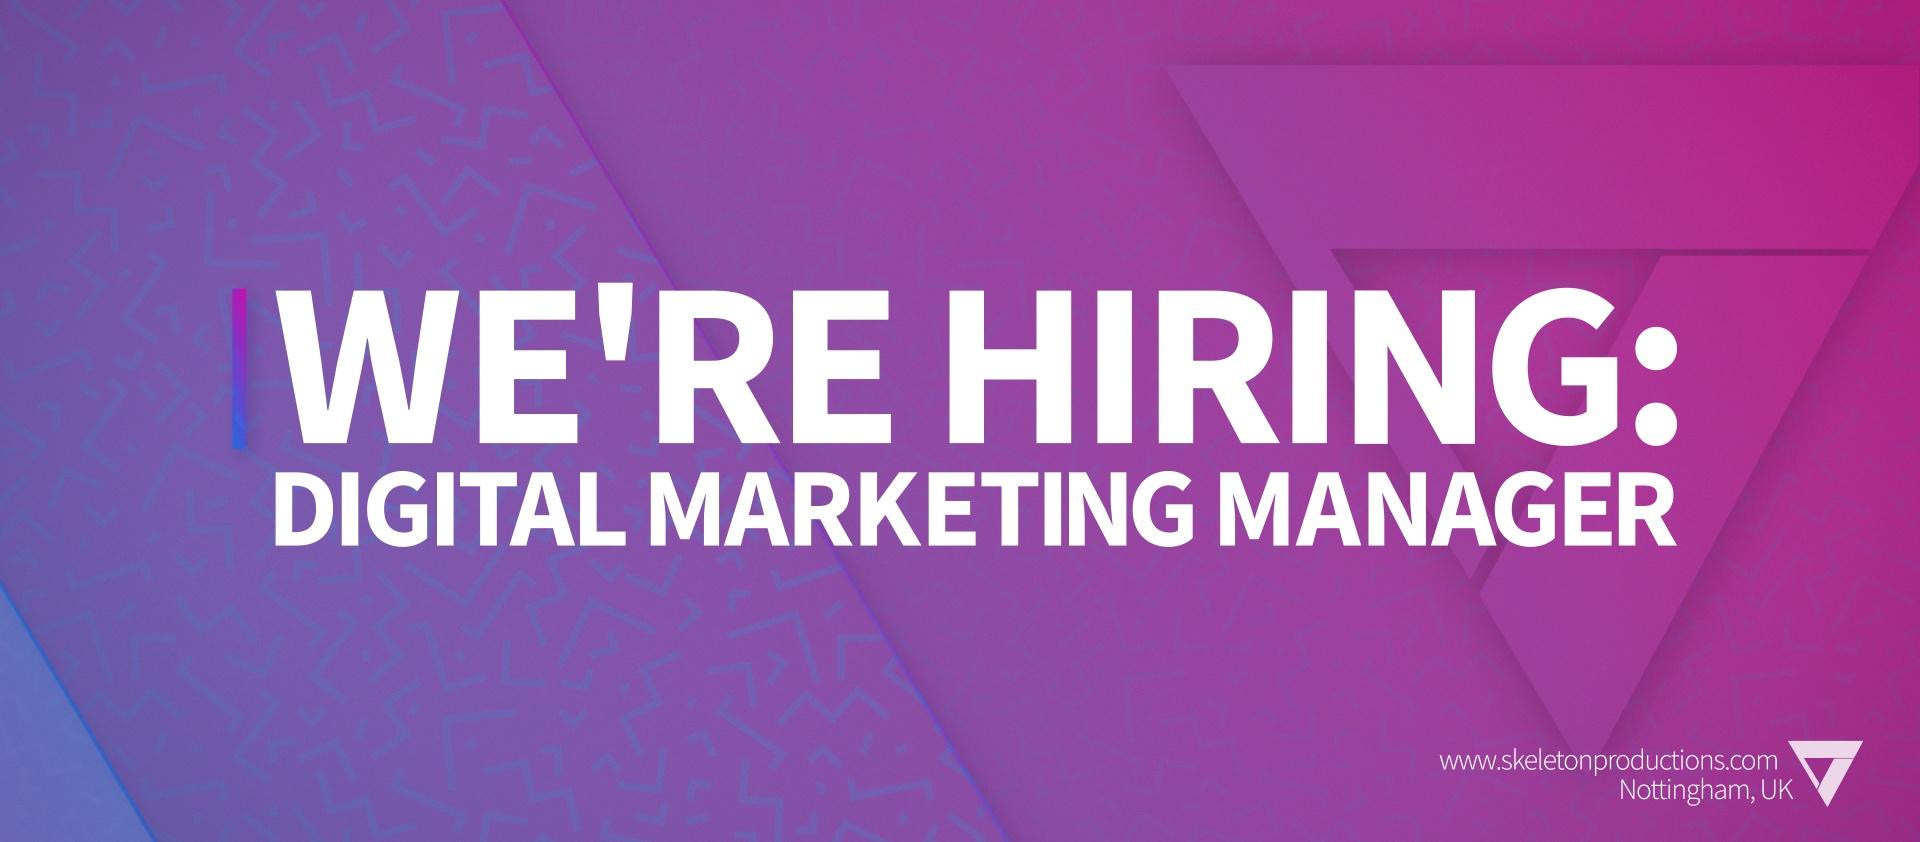 We're Hiring: Digital Marketing Manager featured image